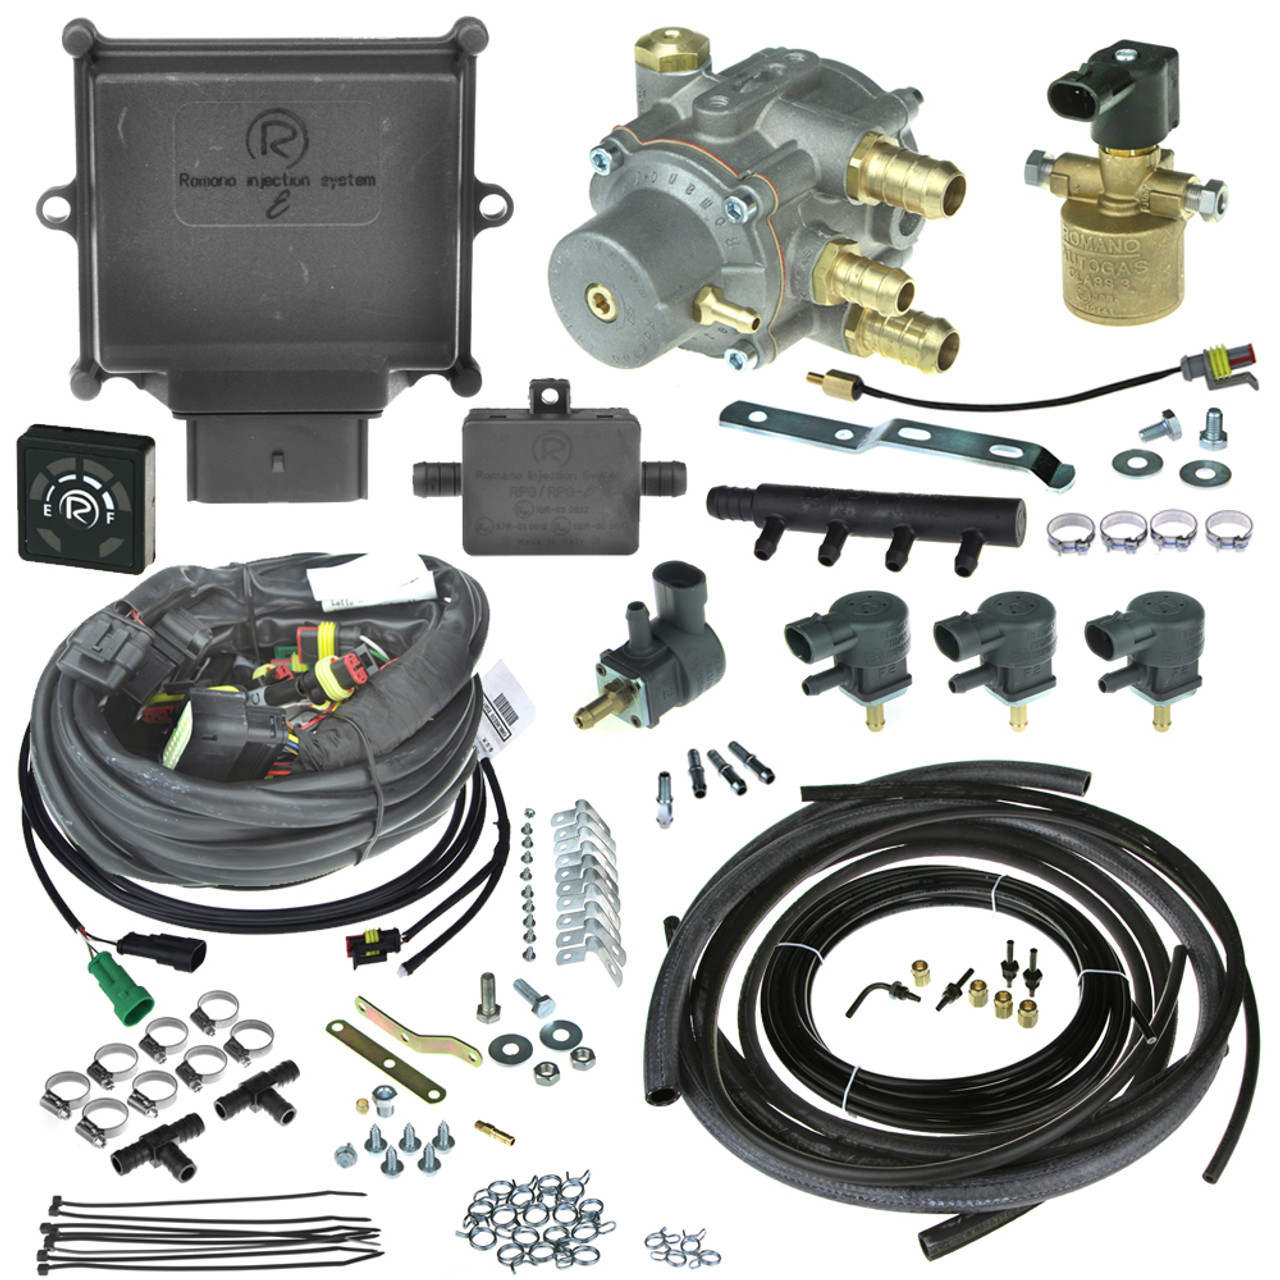 Romano Eco Non Eobd 4 Cylinder Injection System Autogas Lpg Conversion Kit With Reducer Injectors And